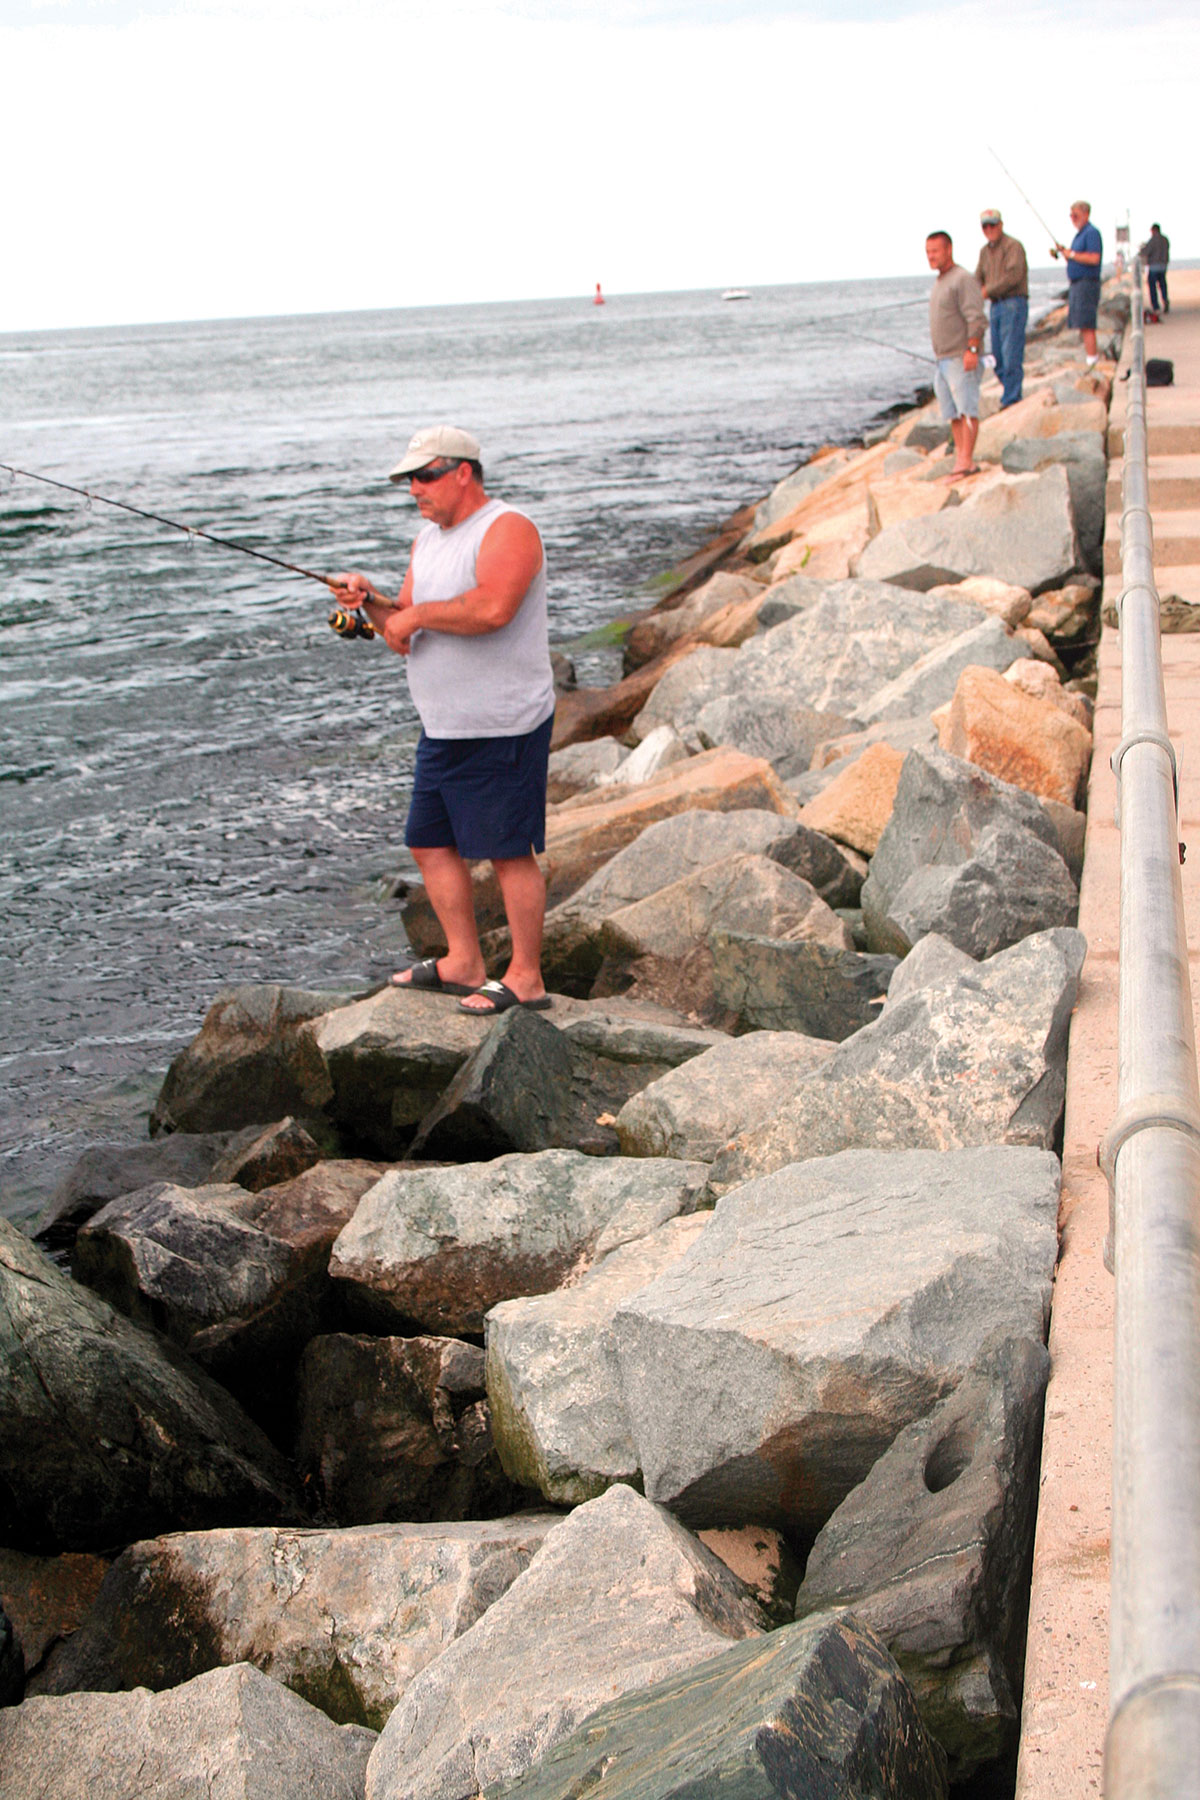 fished from the rocks